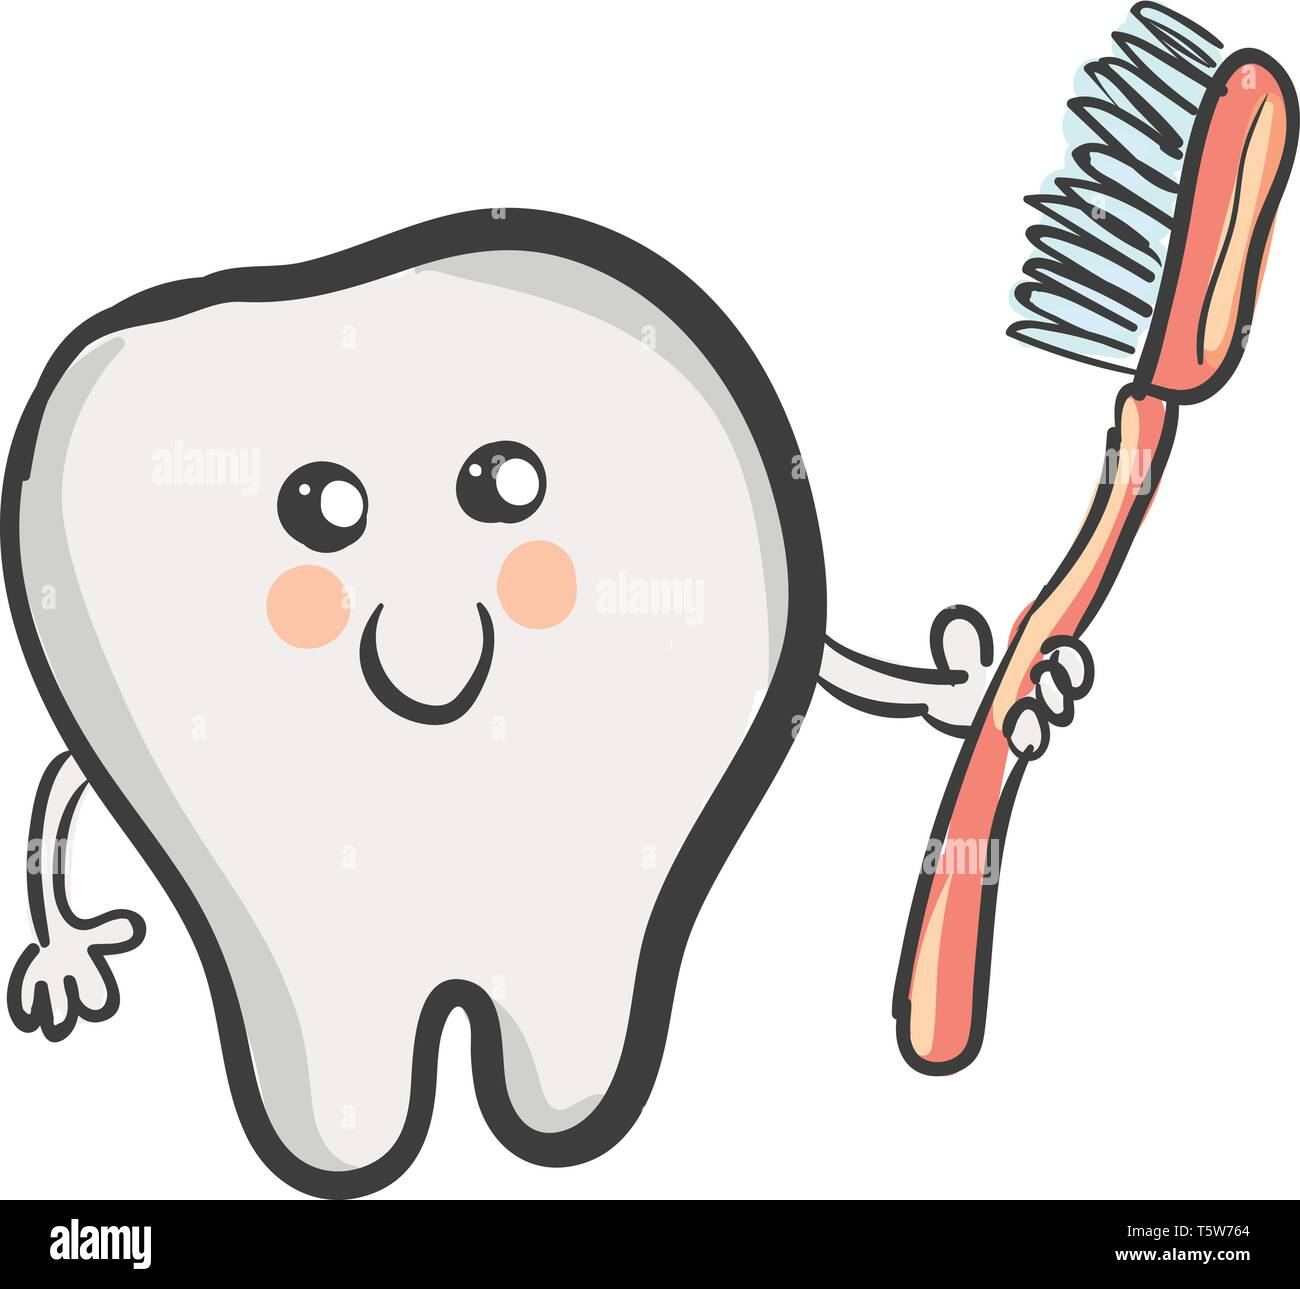 A Cartoon Tooth That Looks So Cute With A Smiley Face Holds A Red Toothbrush With Blue Bristles Vector Color Drawing Or Illustration Stock Vector Image Art Alamy